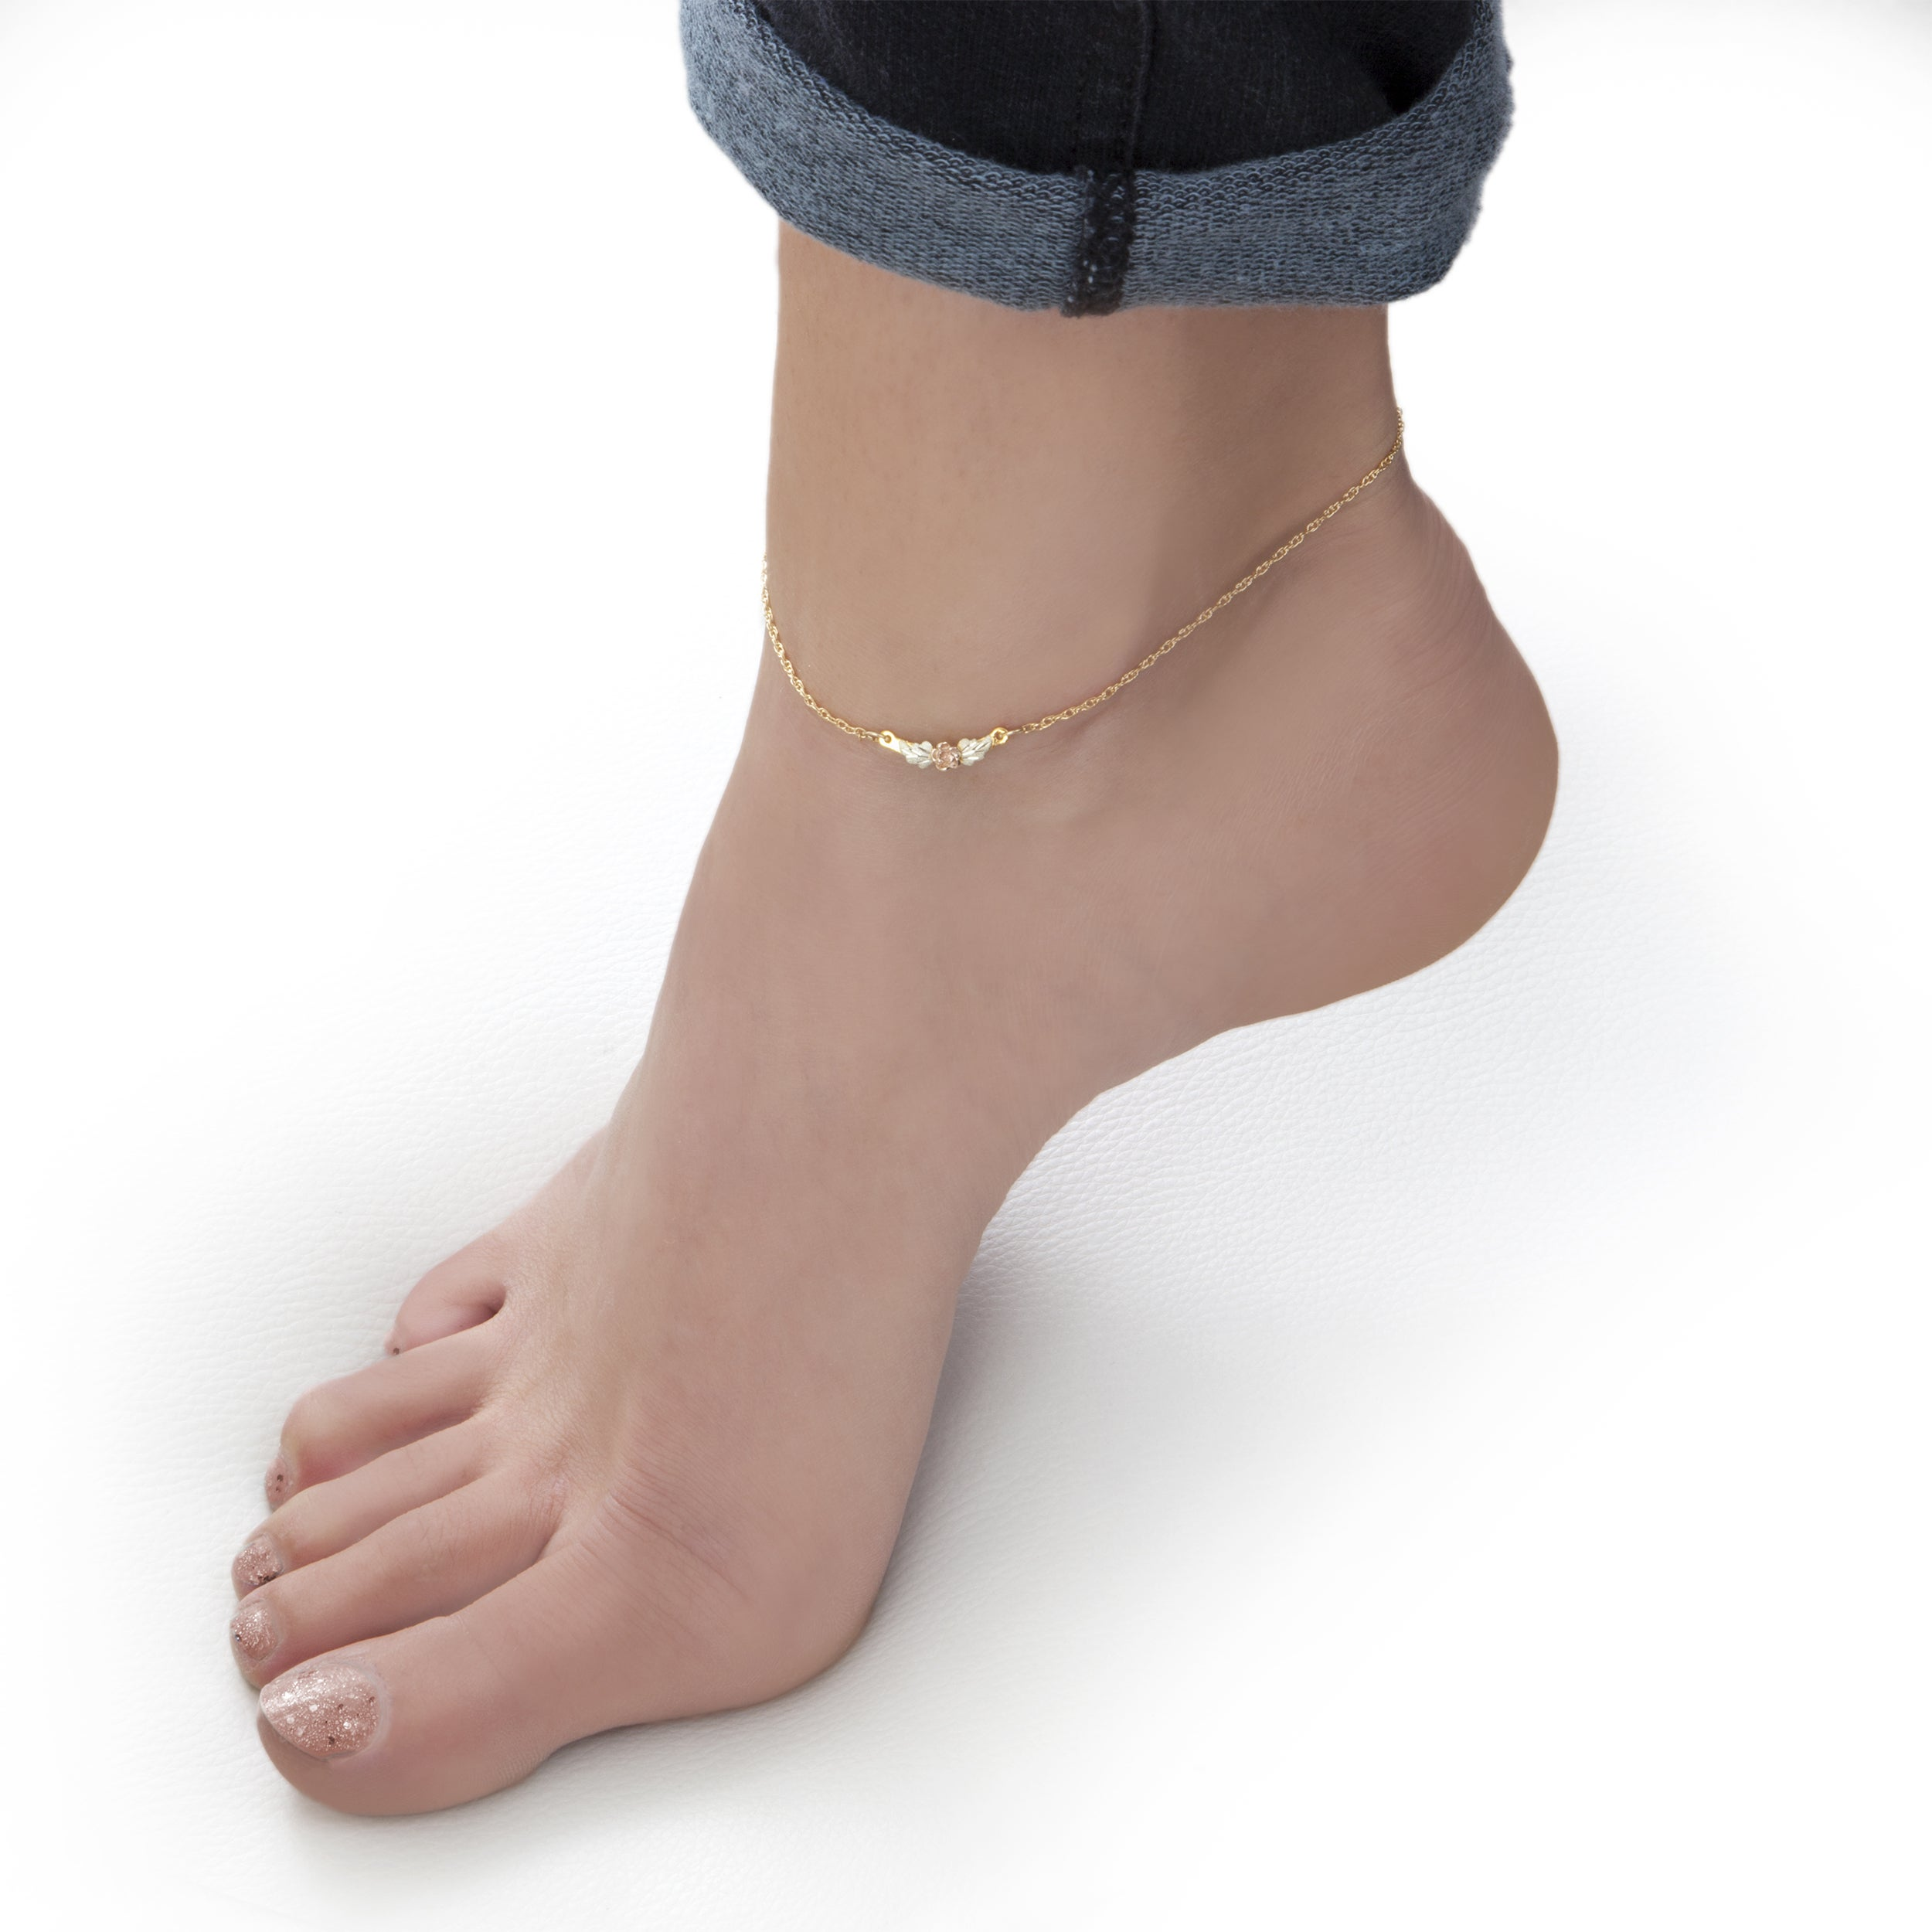 handmade in sandals anklets bali jewelry gold barefoot products women foot for nikita anklet